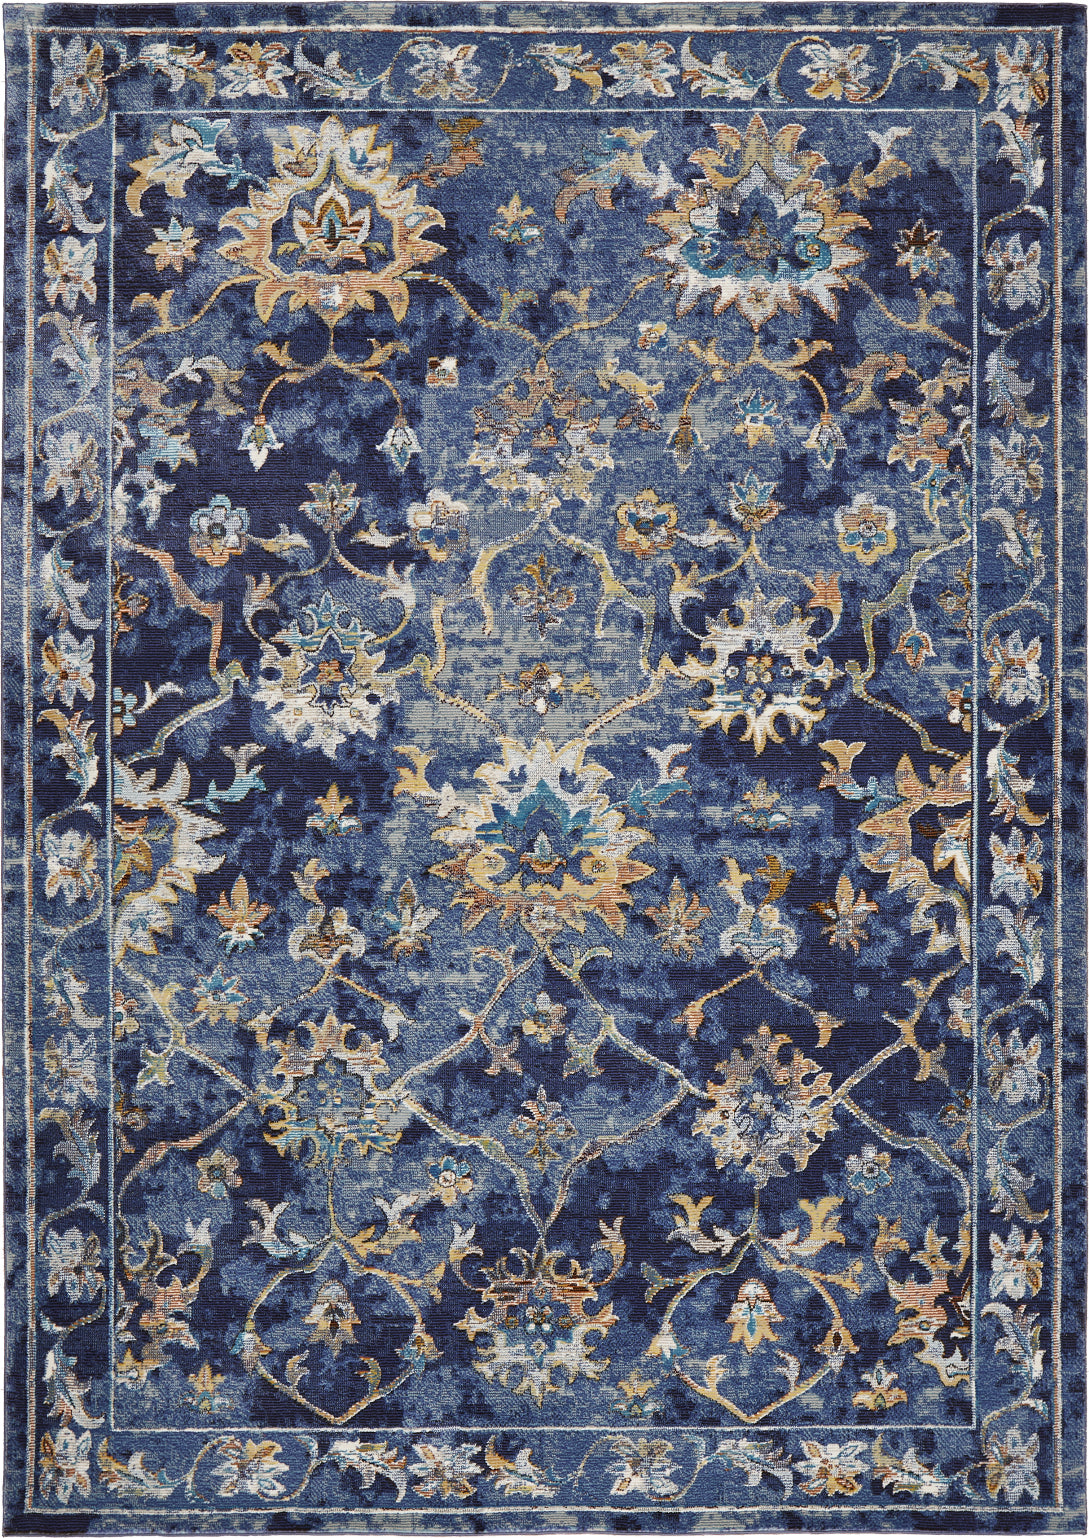 LR Resources Gala 81275 Indigo Multi Area Rug main image